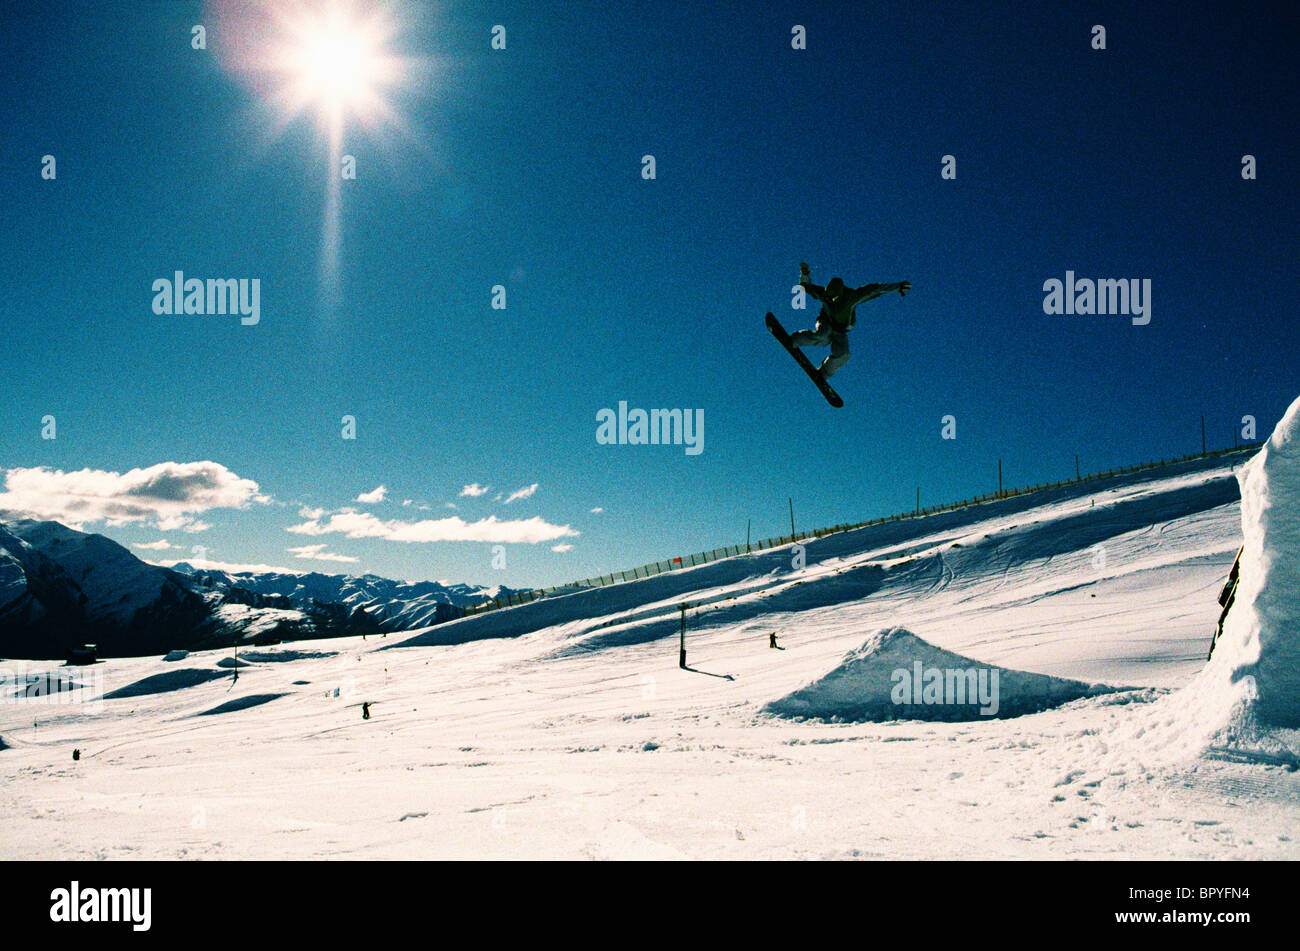 Big air in the snowboard park, out of control. - Stock Image